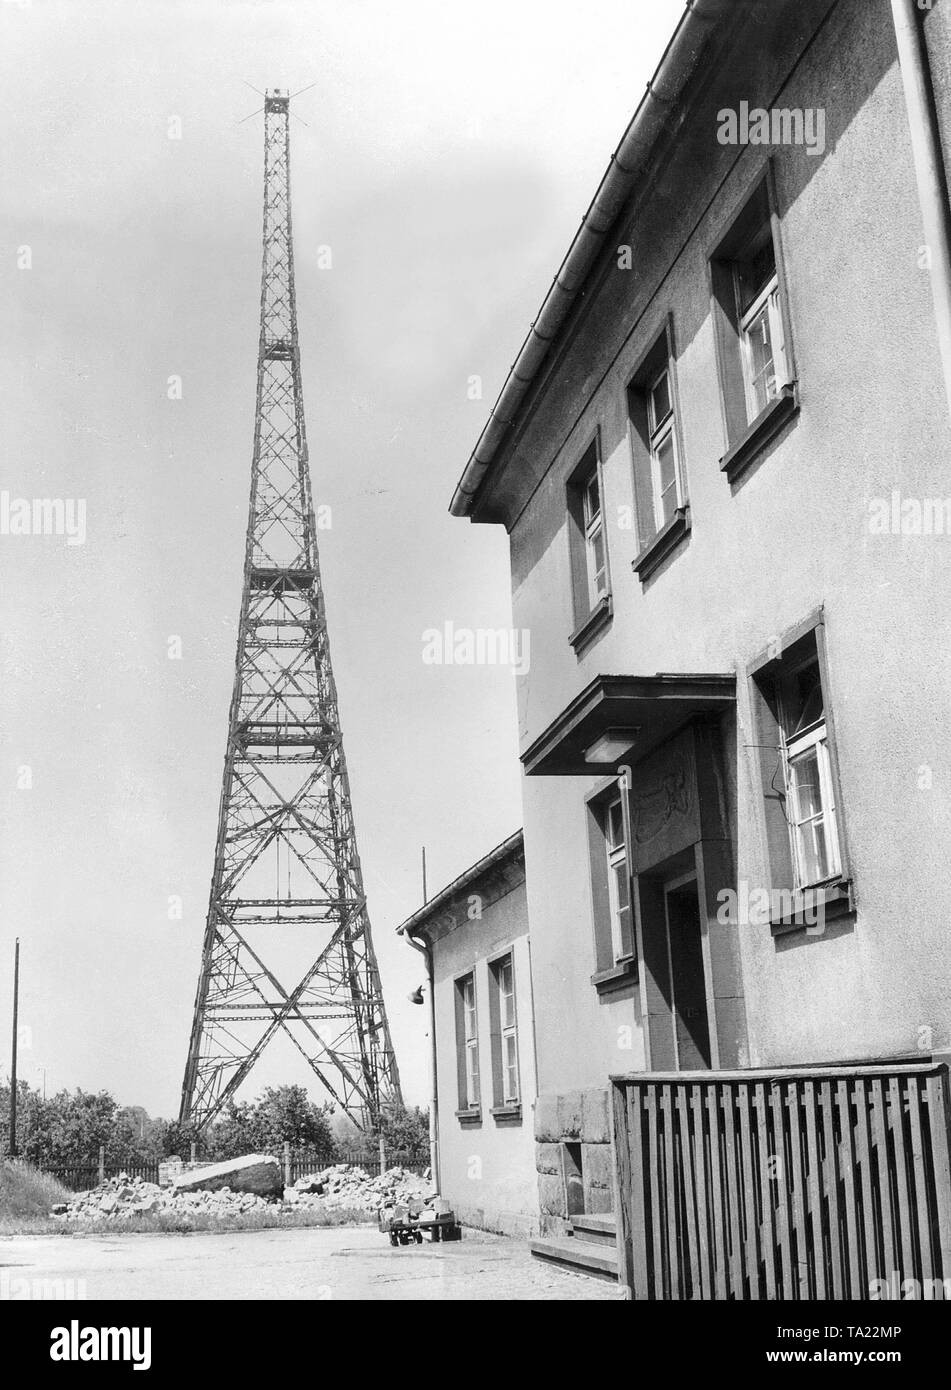 Antenna and building of the Reich transmitter at Gleiwitz. - Stock Image